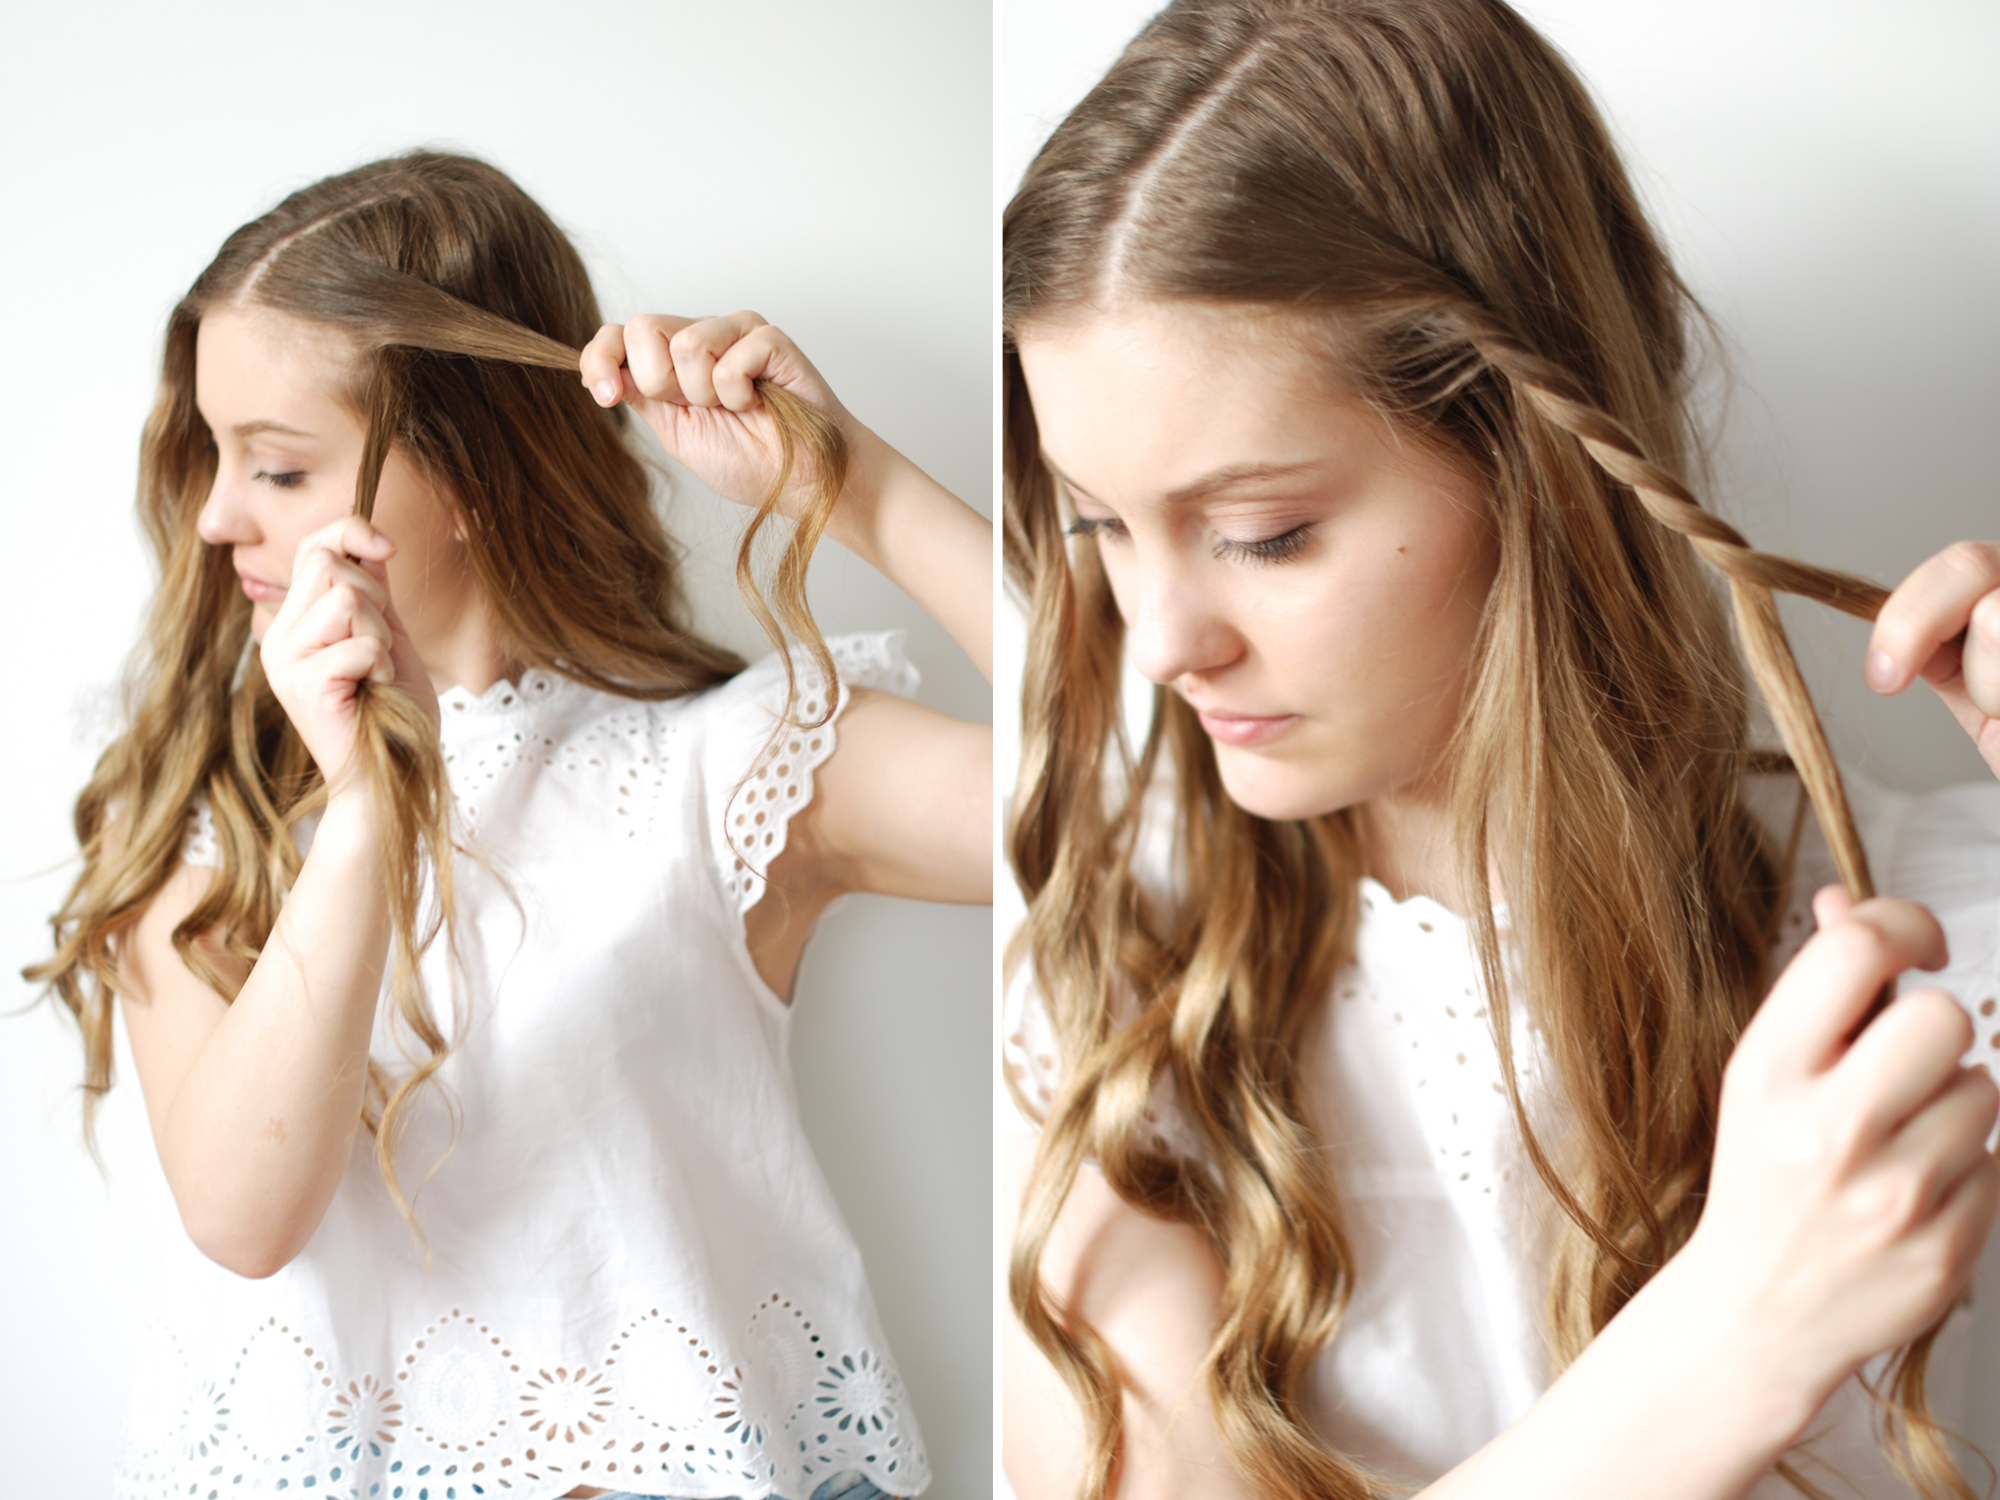 Hair Tutorial: A Chic Twisted Braid with Gorgeous Curls